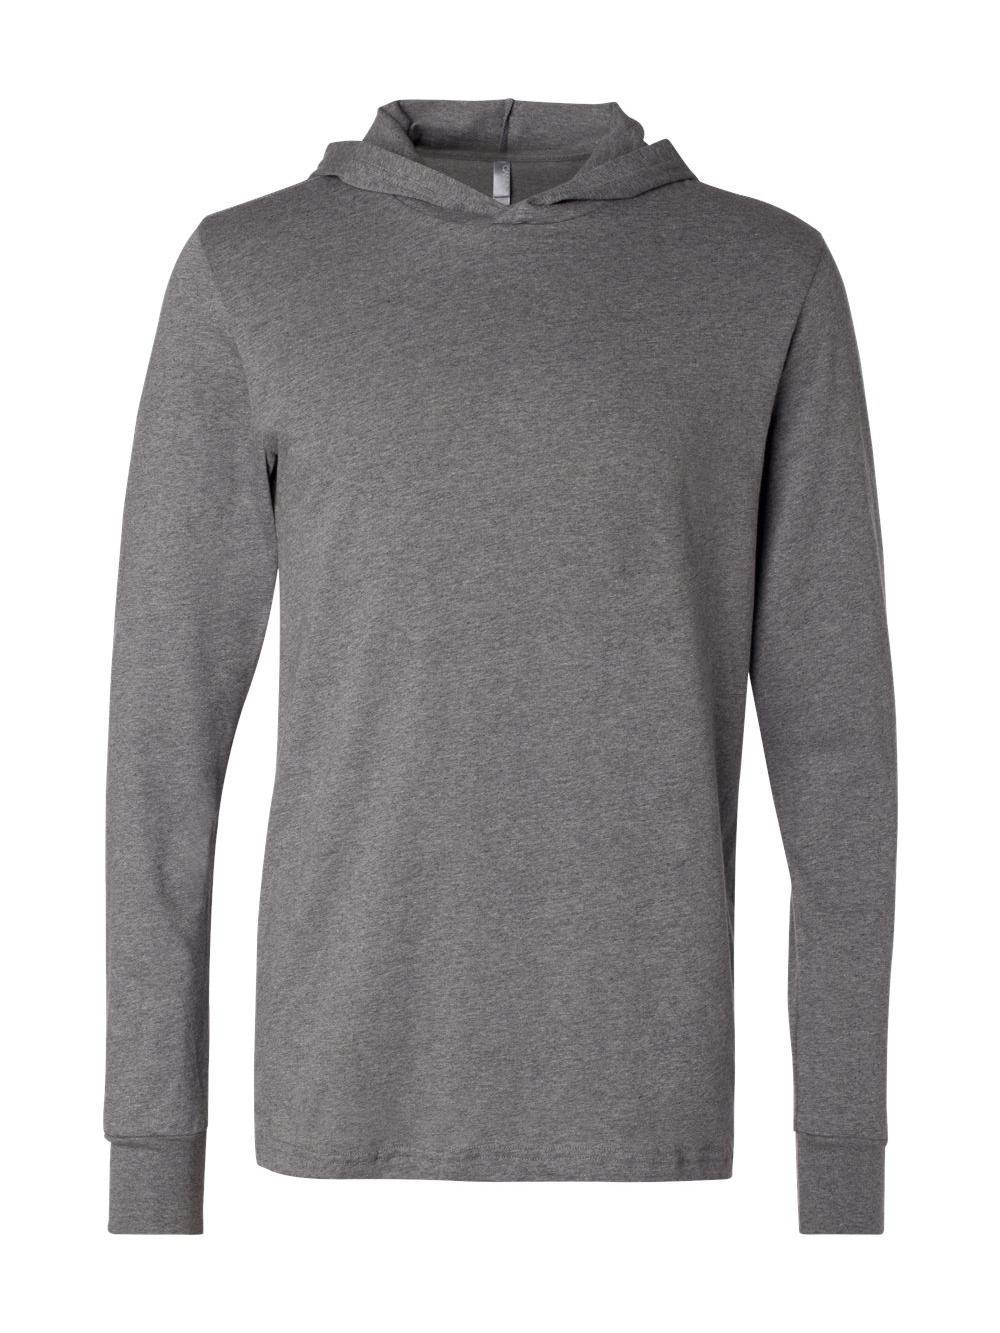 Bella-Canvas-Unisex-Long-Sleeve-Jersey-Hooded-Tee-3512 thumbnail 12